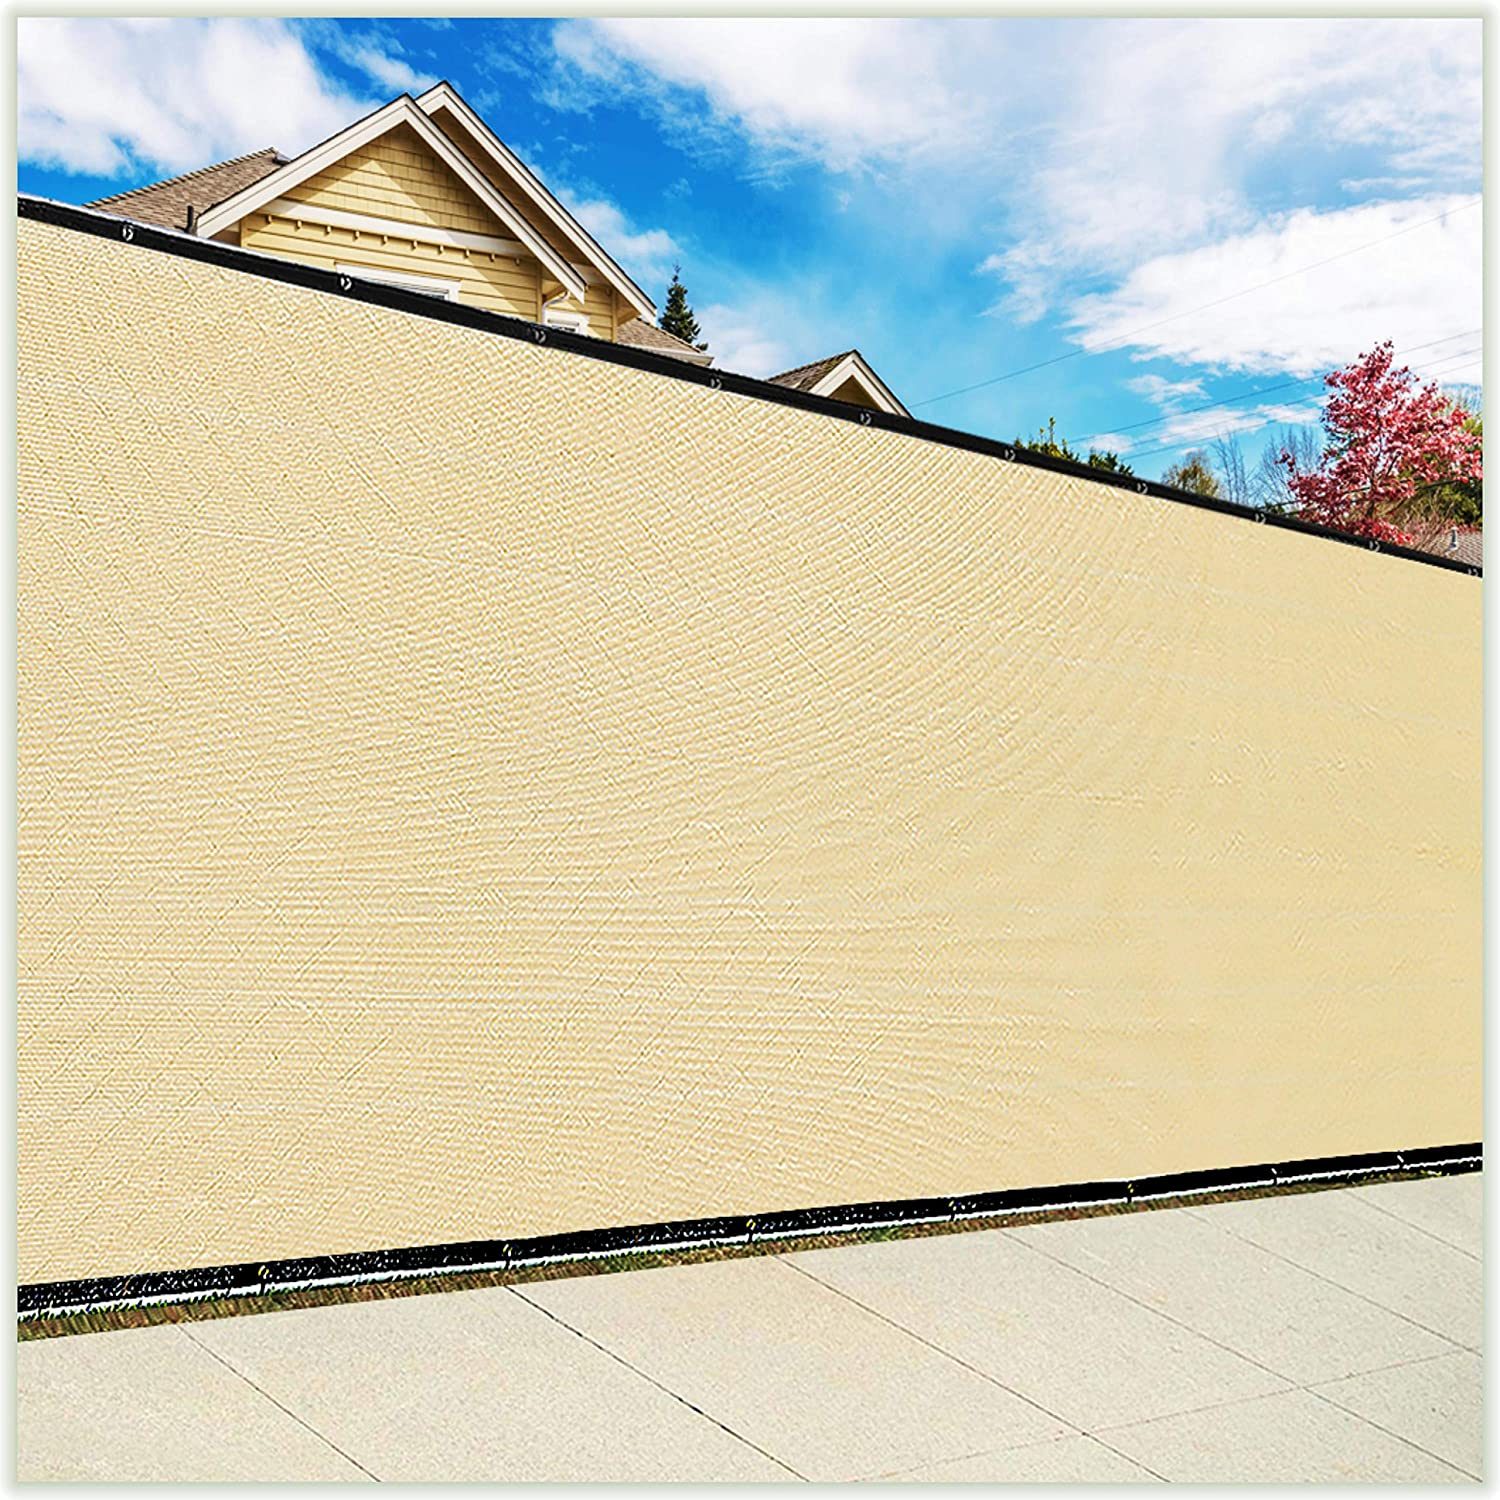 ColourTree 5' x 50' Beige Fence Privacy Screen Windscreen Cover Fabric Shade Tarp Netting Mesh Cloth - Commercial Grade 170 GSM - Cable Zip Ties Included - We Make Custom Size